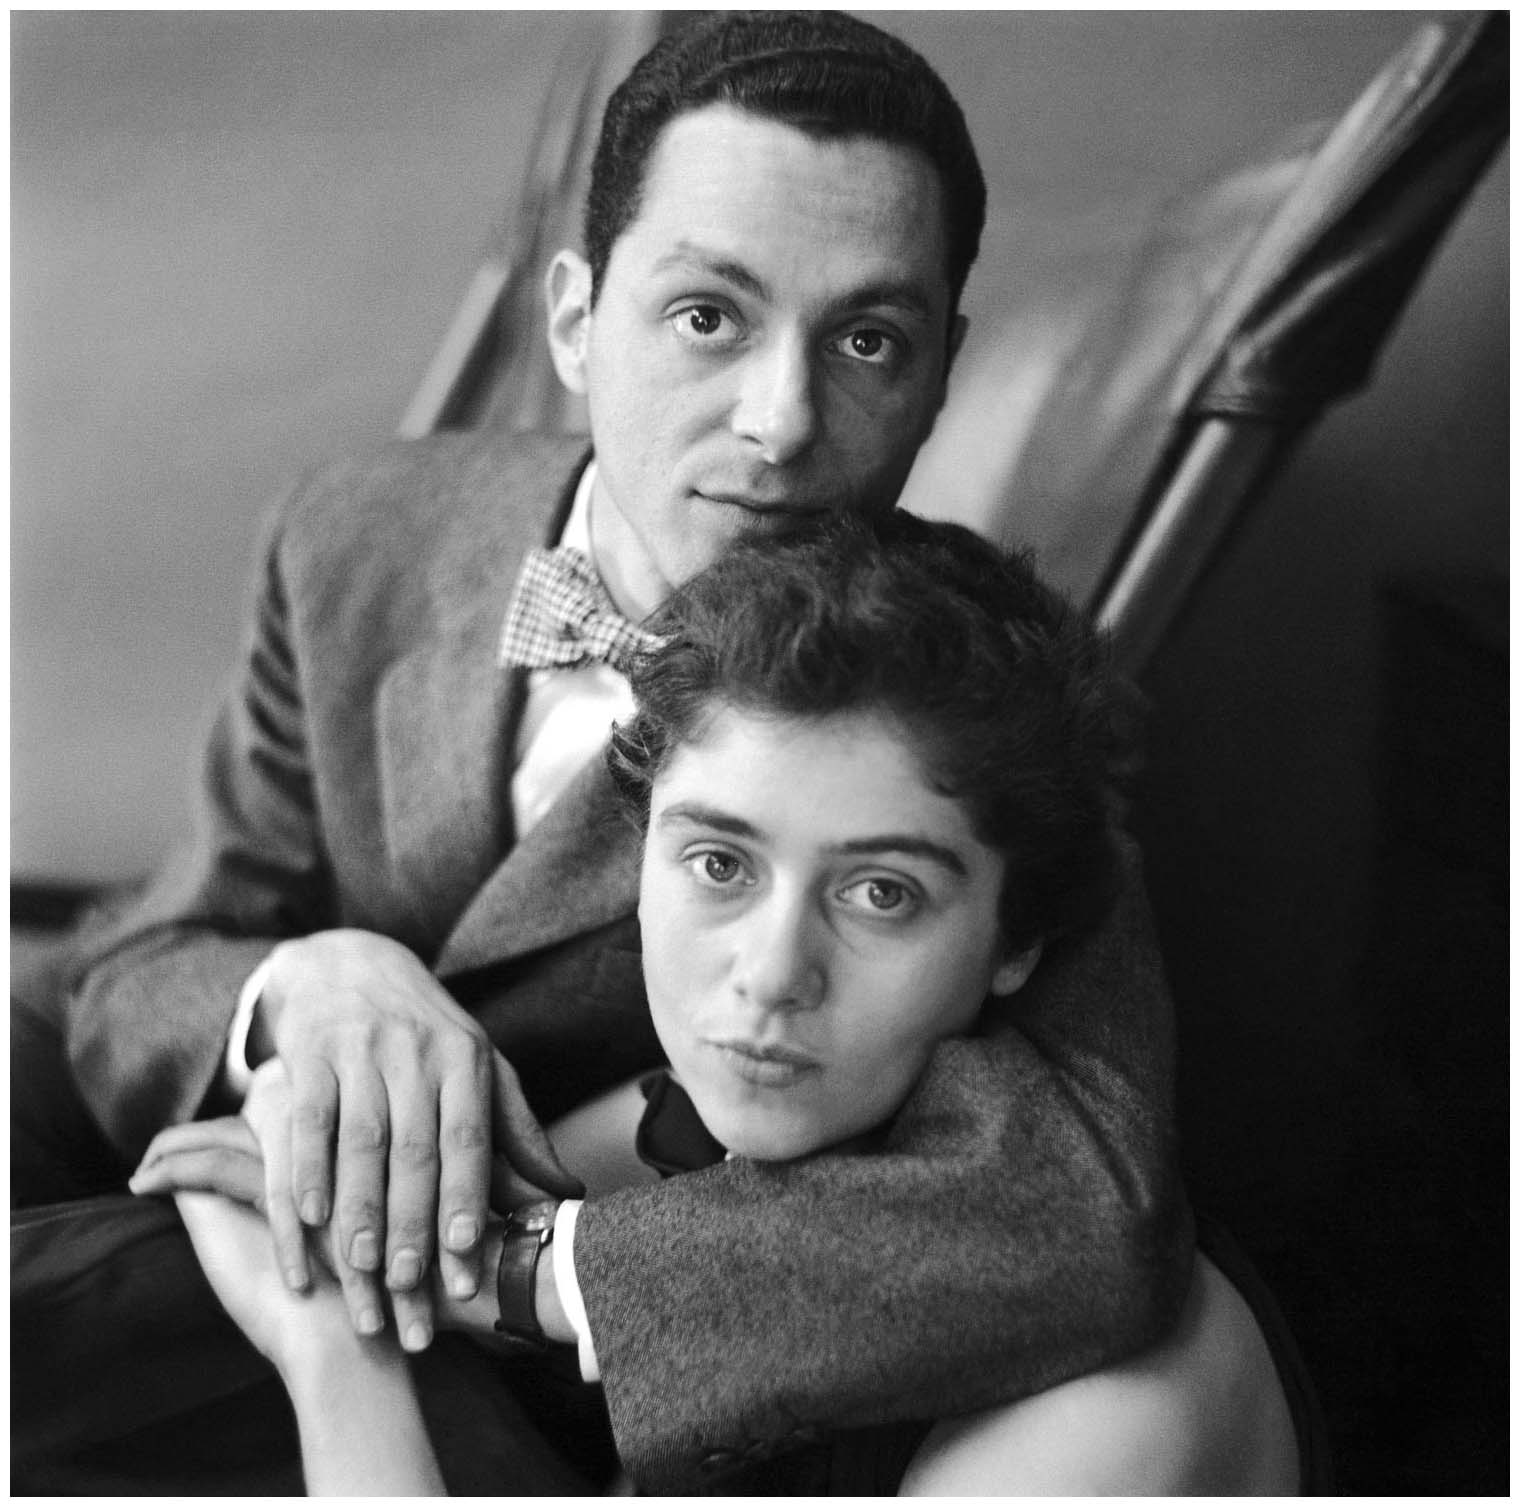 diane-and-allan-arbus-dec-8-1950-frances-mclaughline.jpg